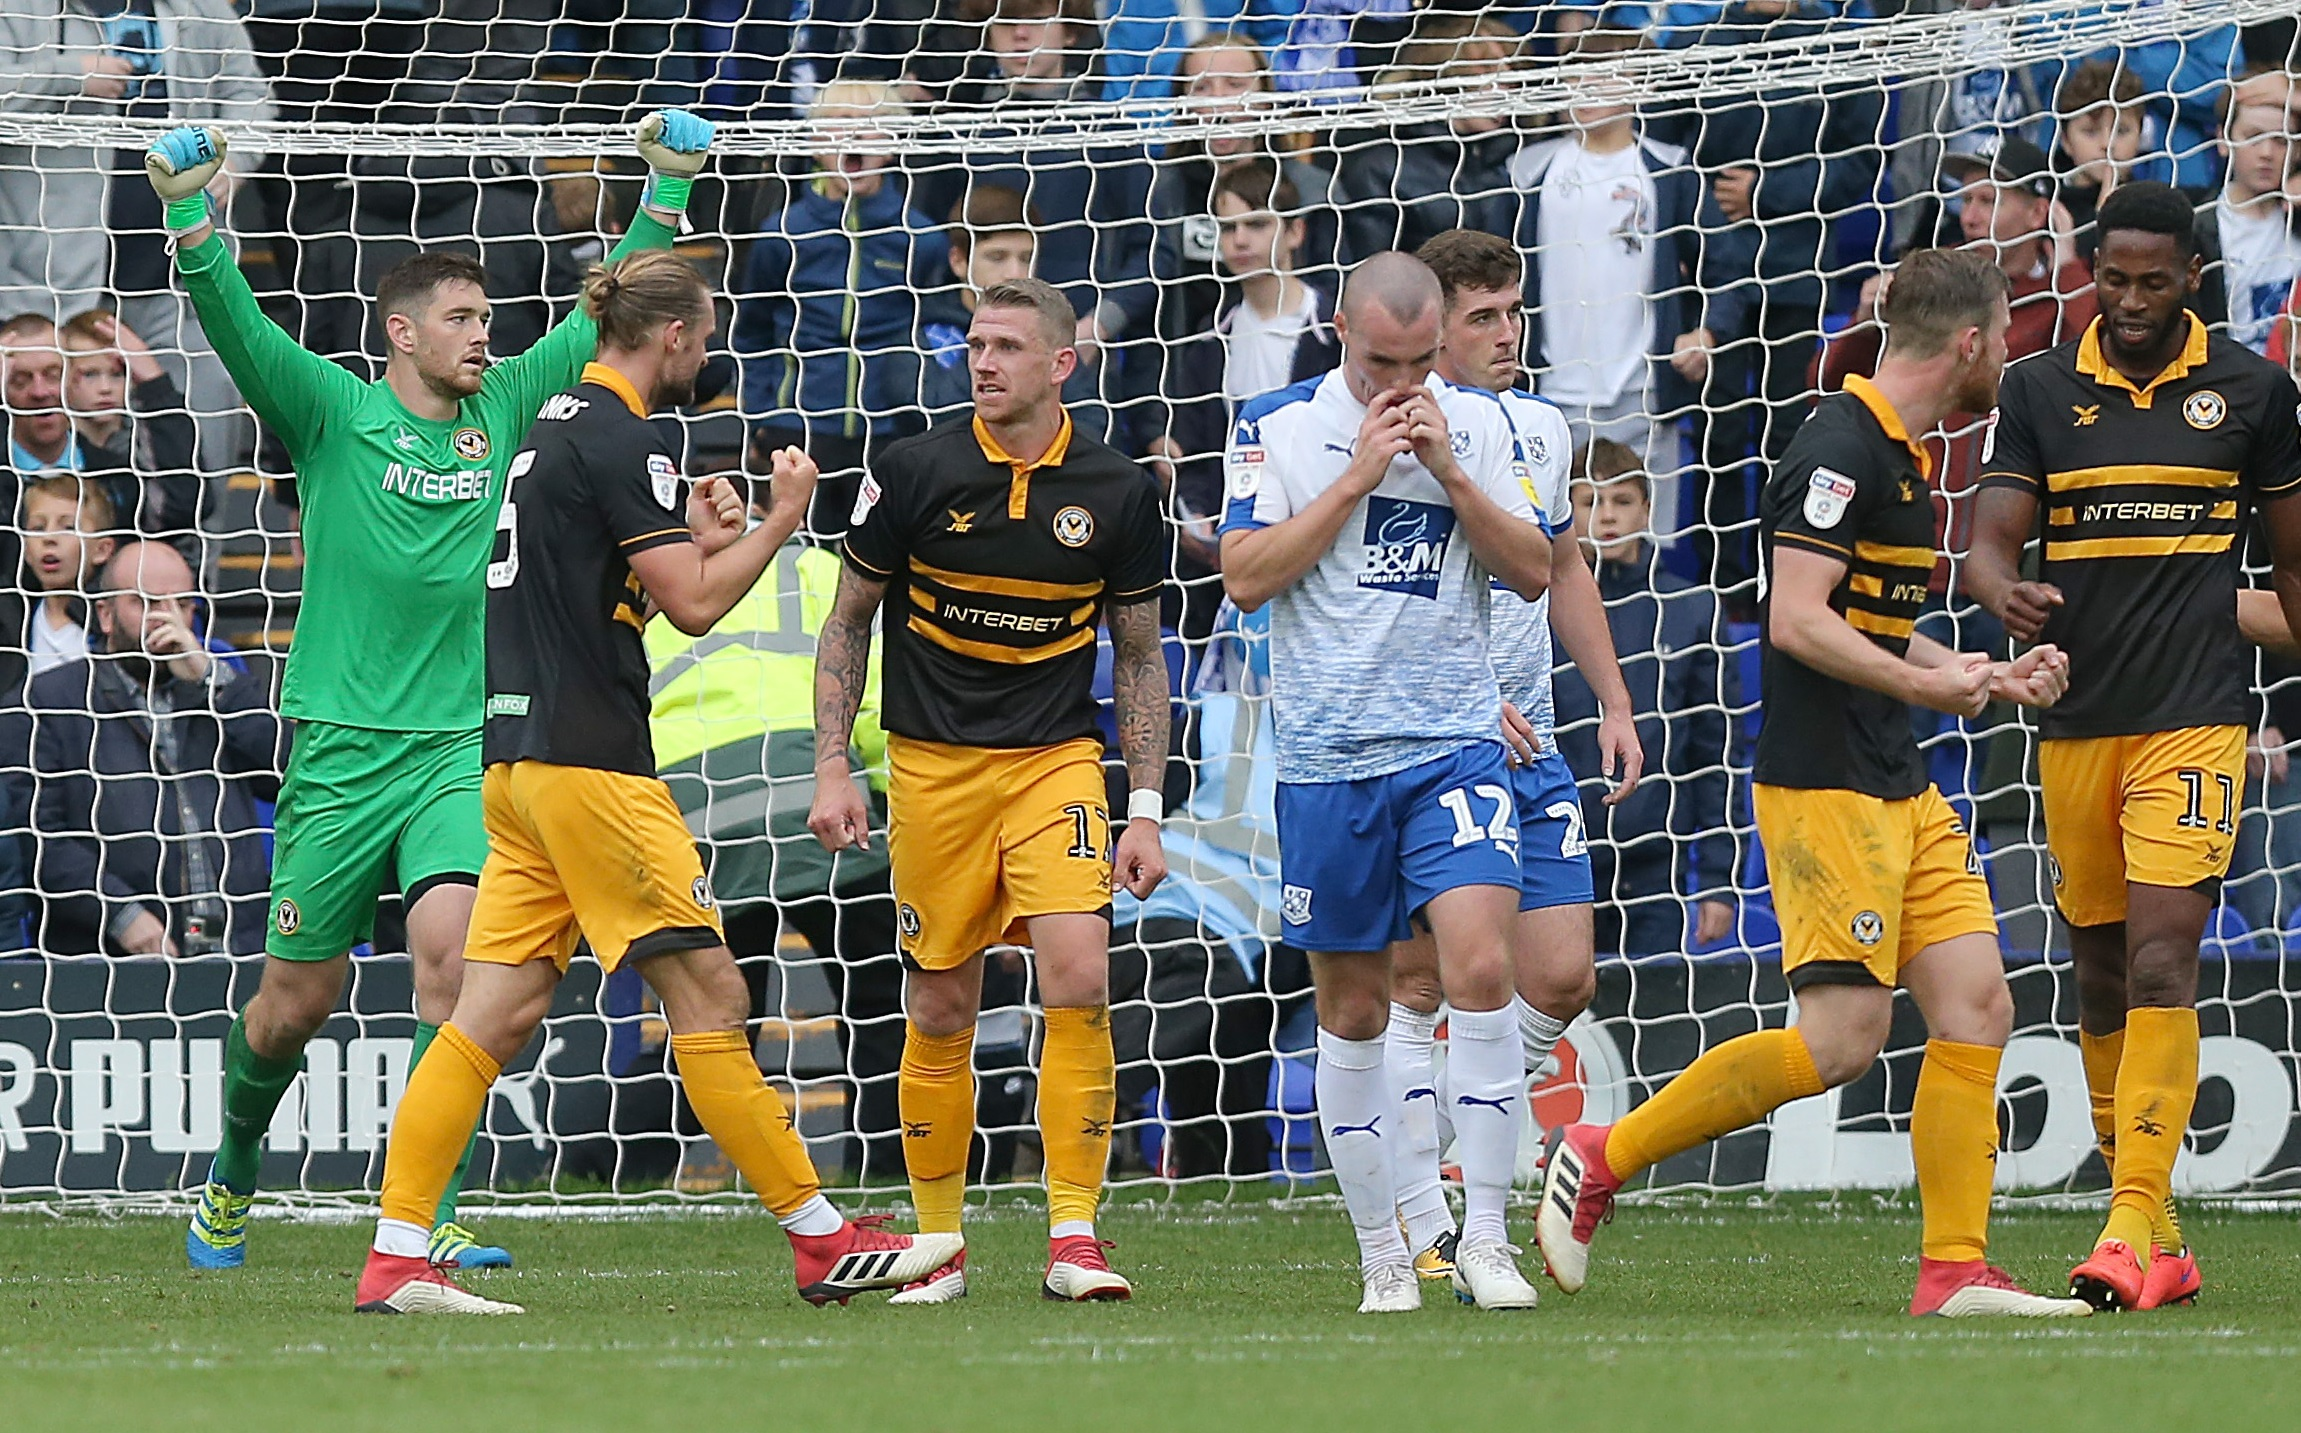 JOY: Joe Day, left, and his Newport County teammates celebrate victory at Tranmere Rovers. Picture: Huw Evans Agency